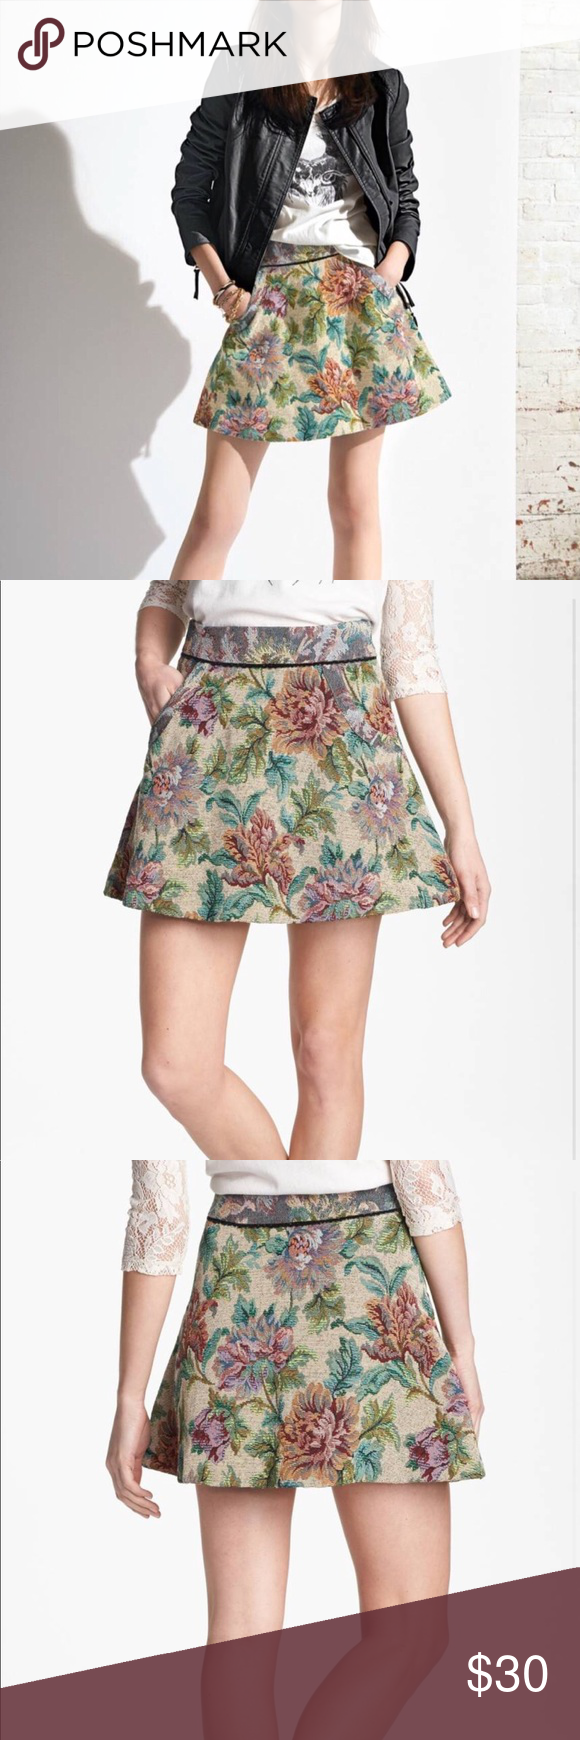 bc10fed44 Free People Floral Tapestry Mini Skirt Sz 4 EUC • Free People • Floral  tapestry mini